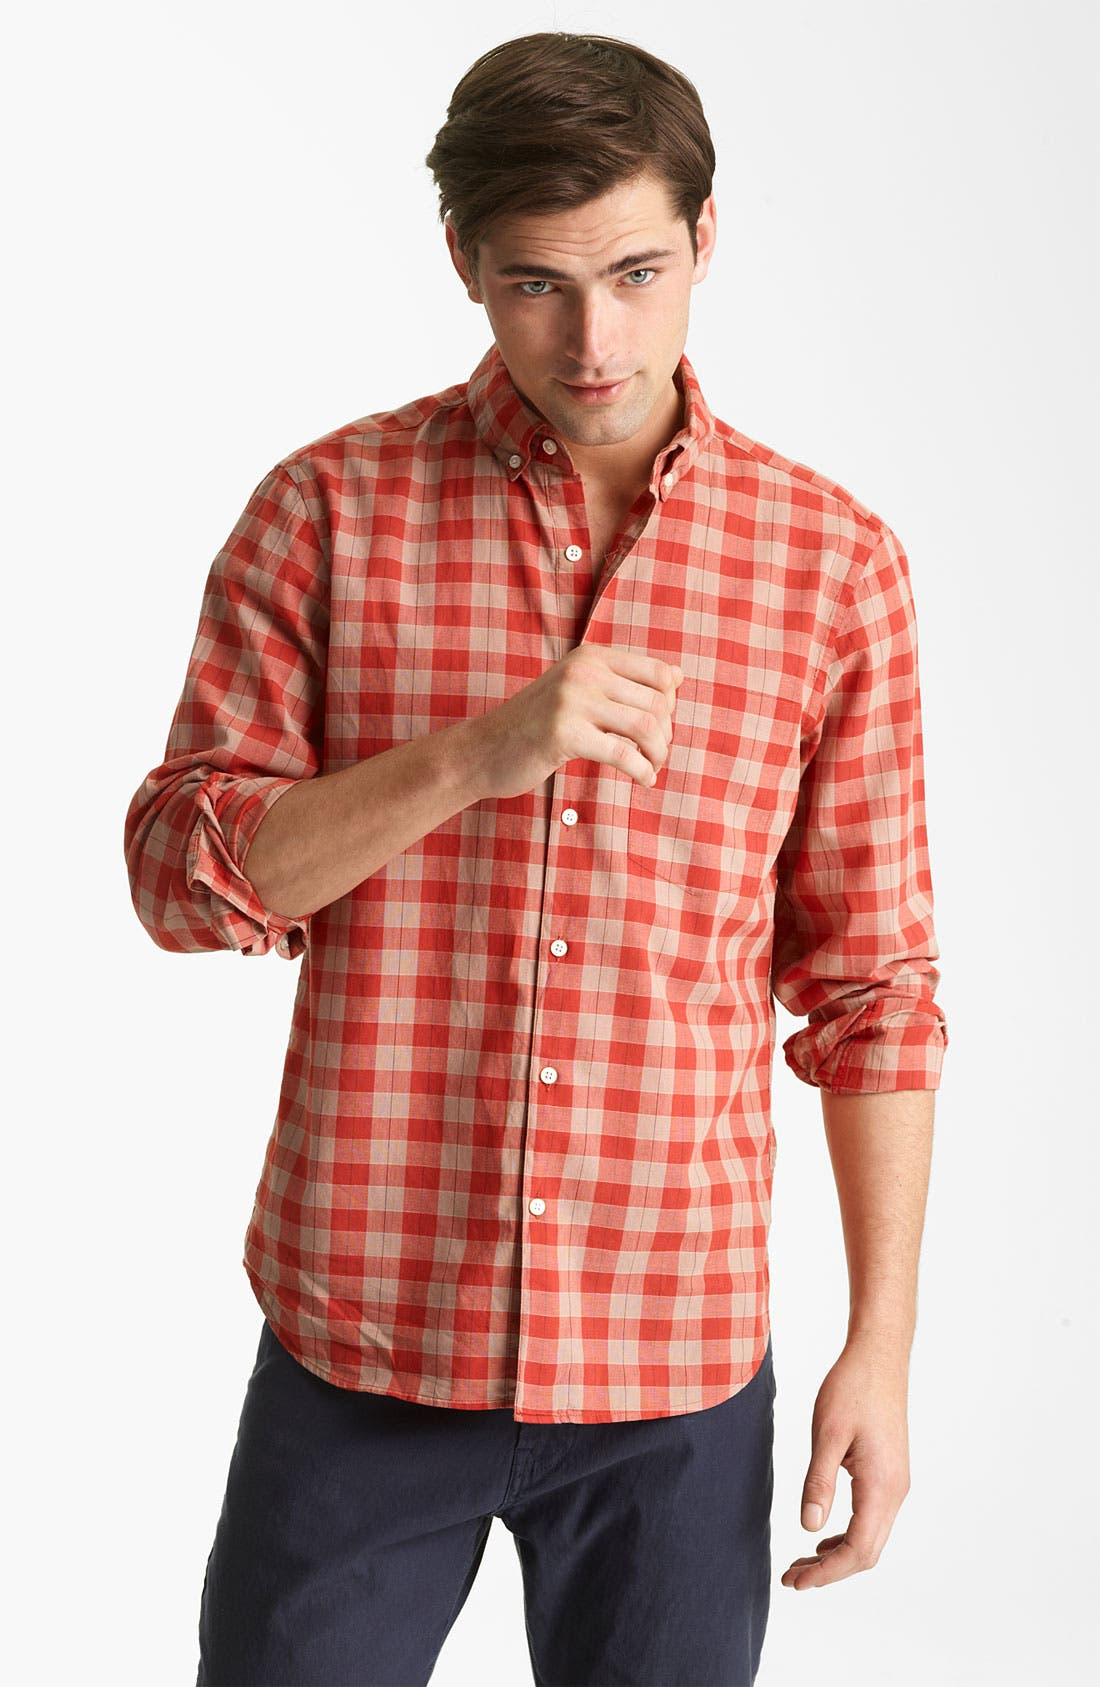 Alternate Image 1 Selected - Steven Alan Plaid Sport Shirt